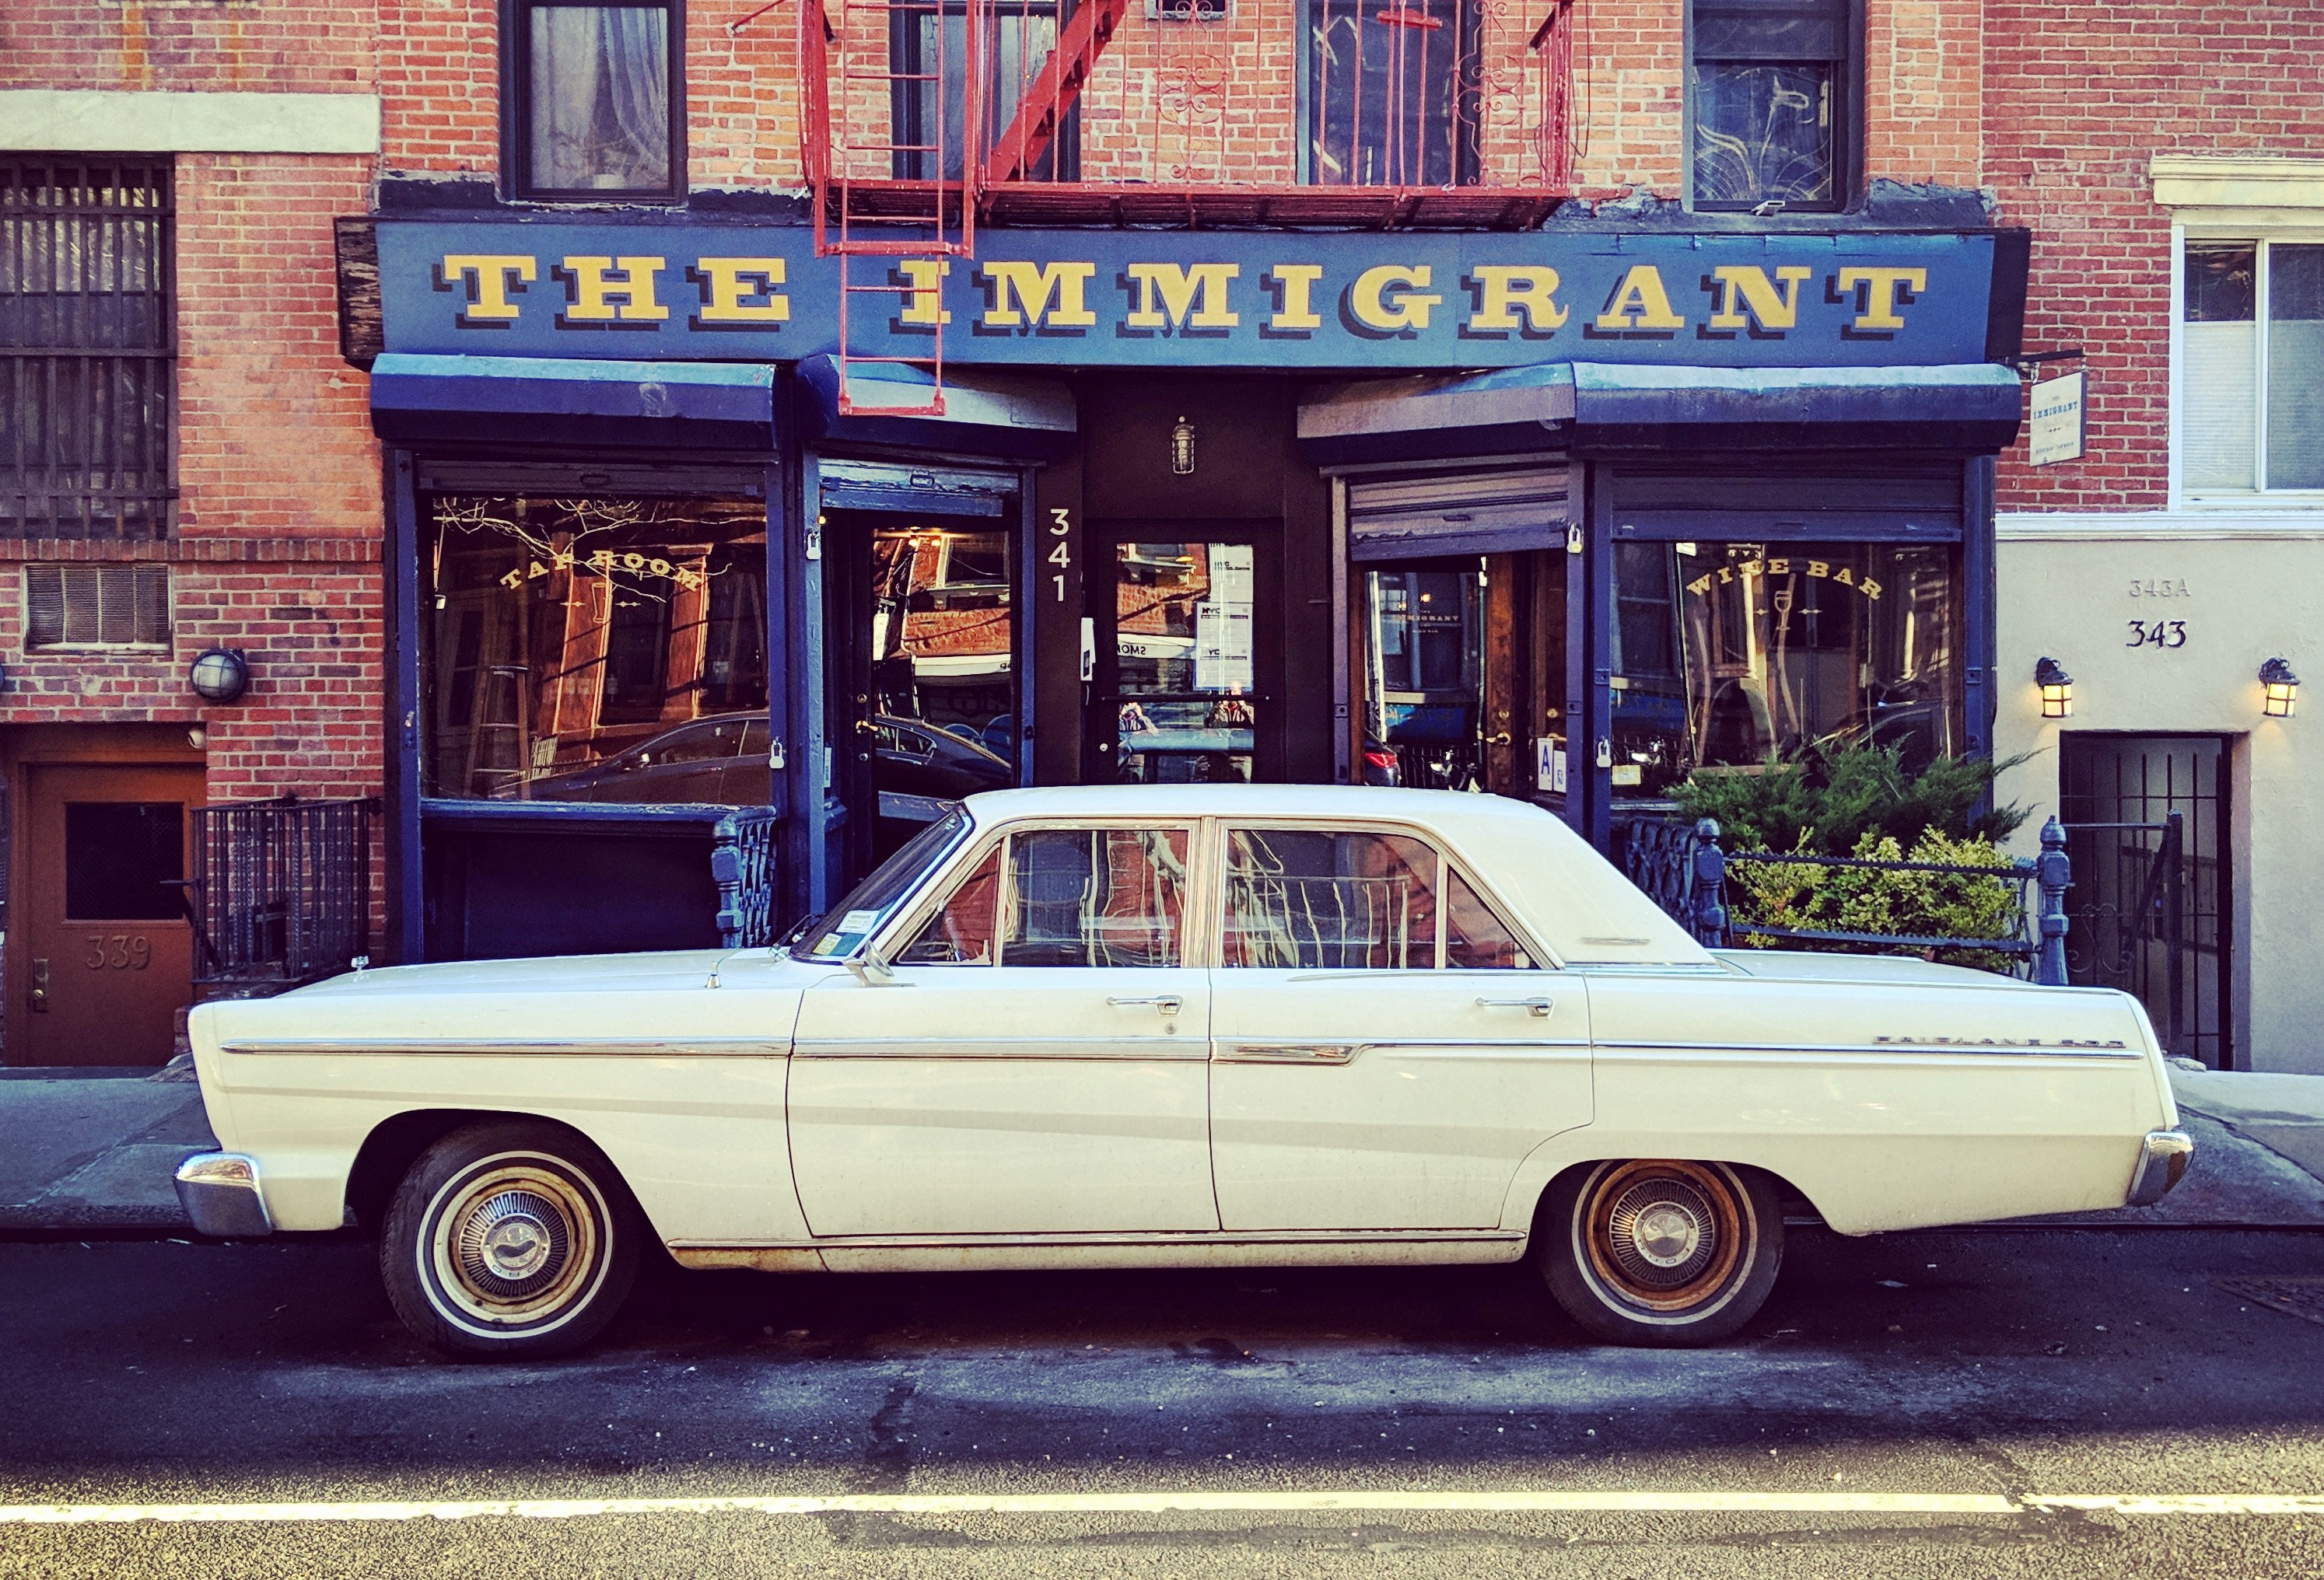 A classic car parked in front of the Immigrant wine and beer bar